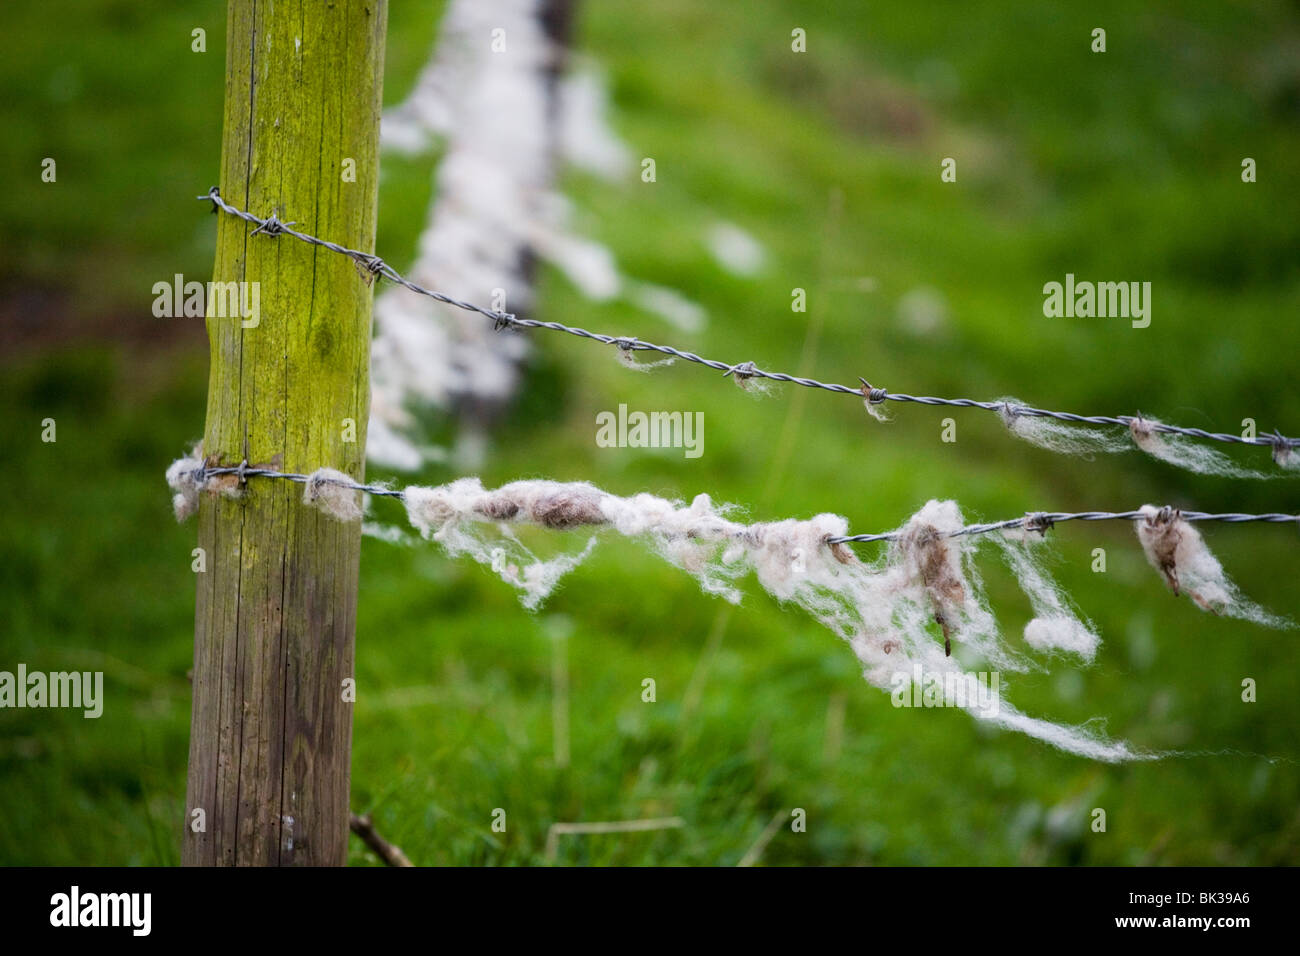 Sheep's wool caught on a fence - Stock Image